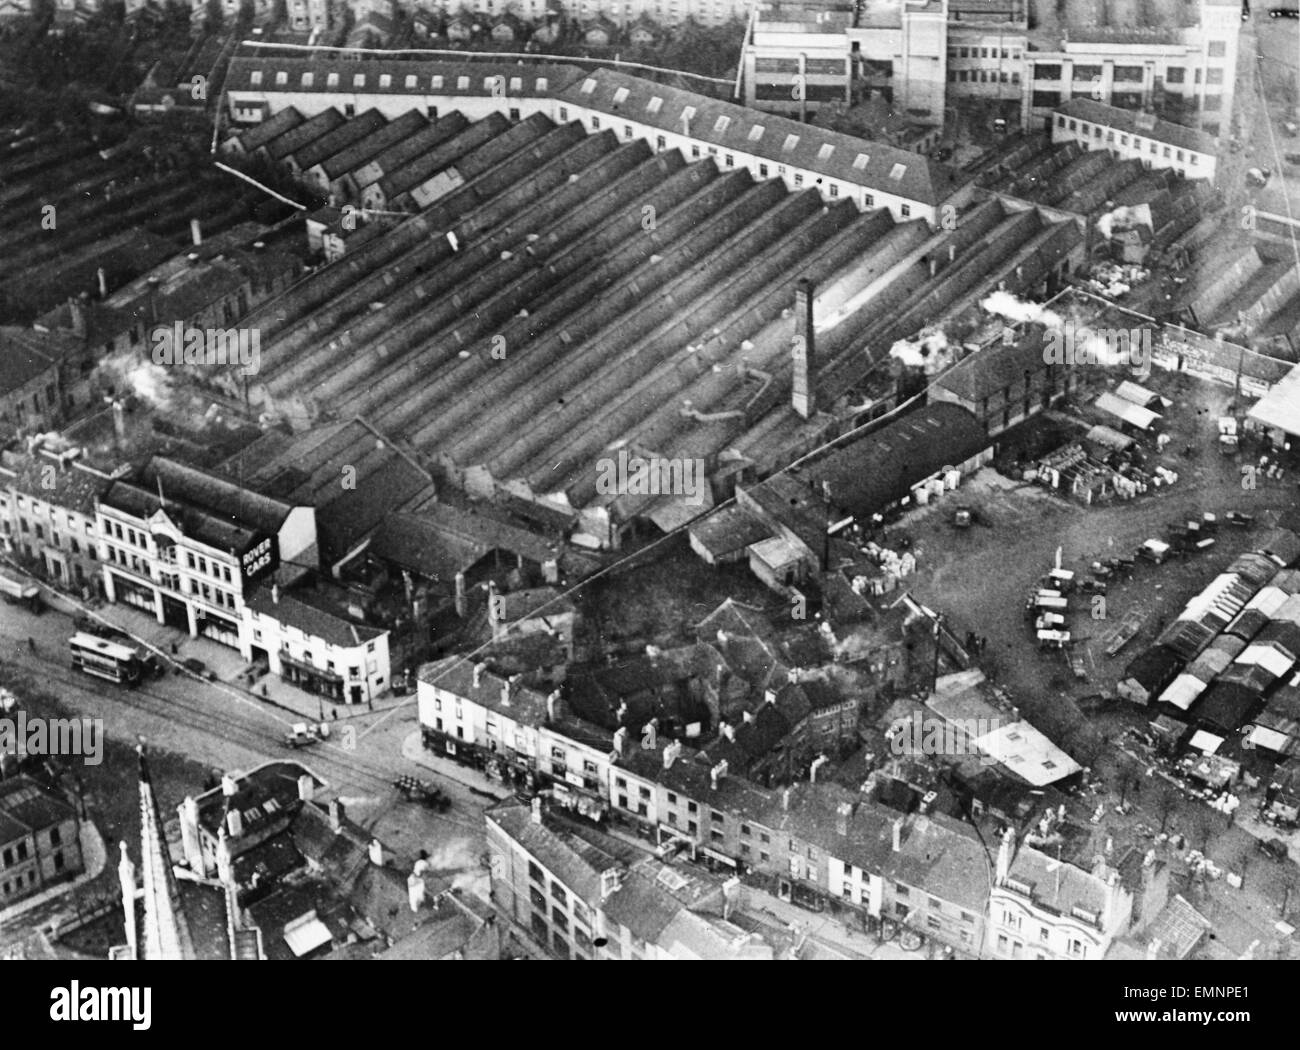 Aerial view of Rover Car Works at Coventry. - Stock Image